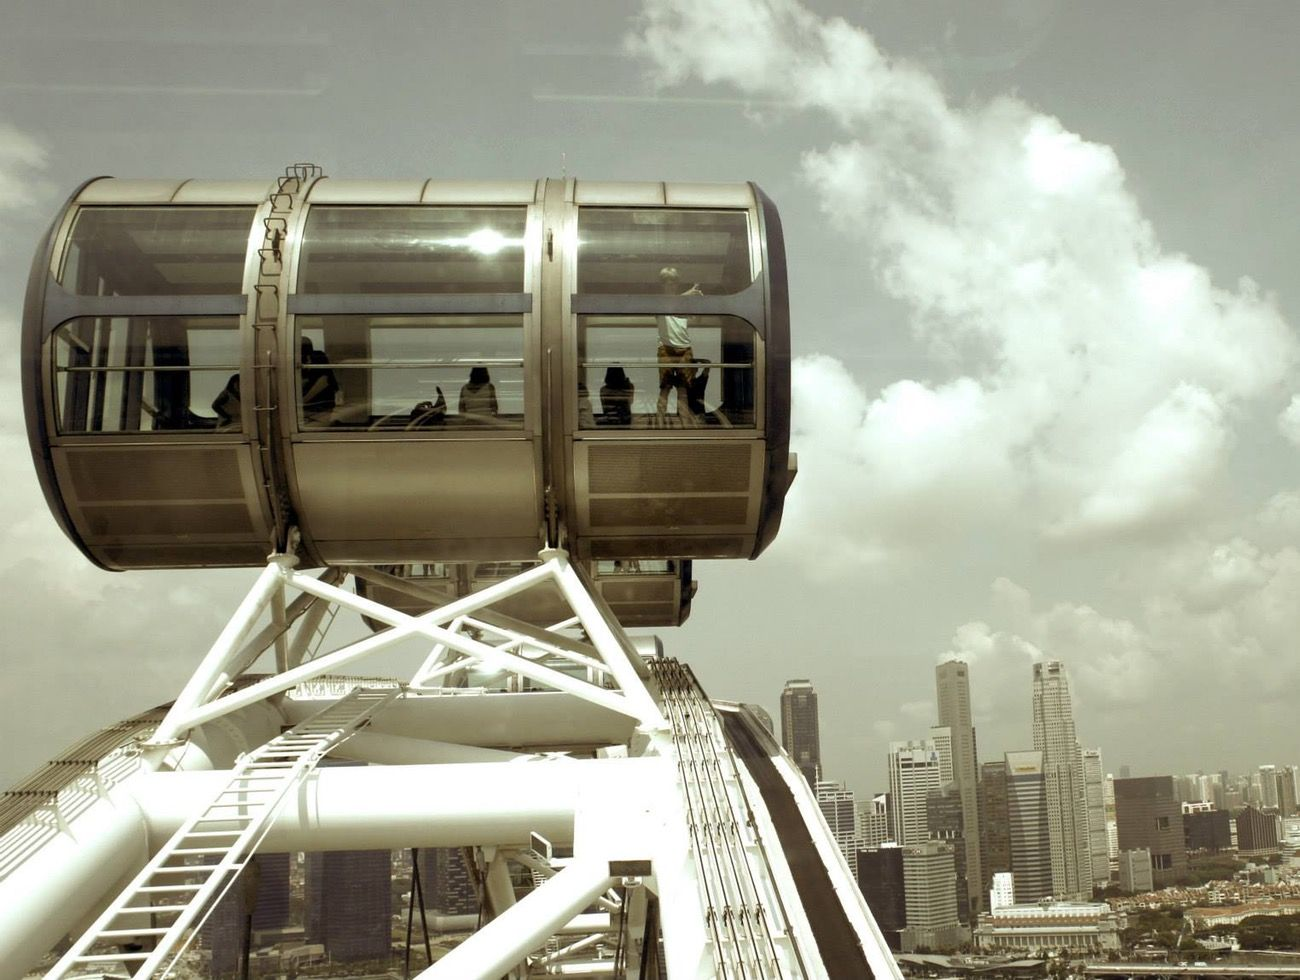 Singapore Flyer With Images Travel Dreams Singapore